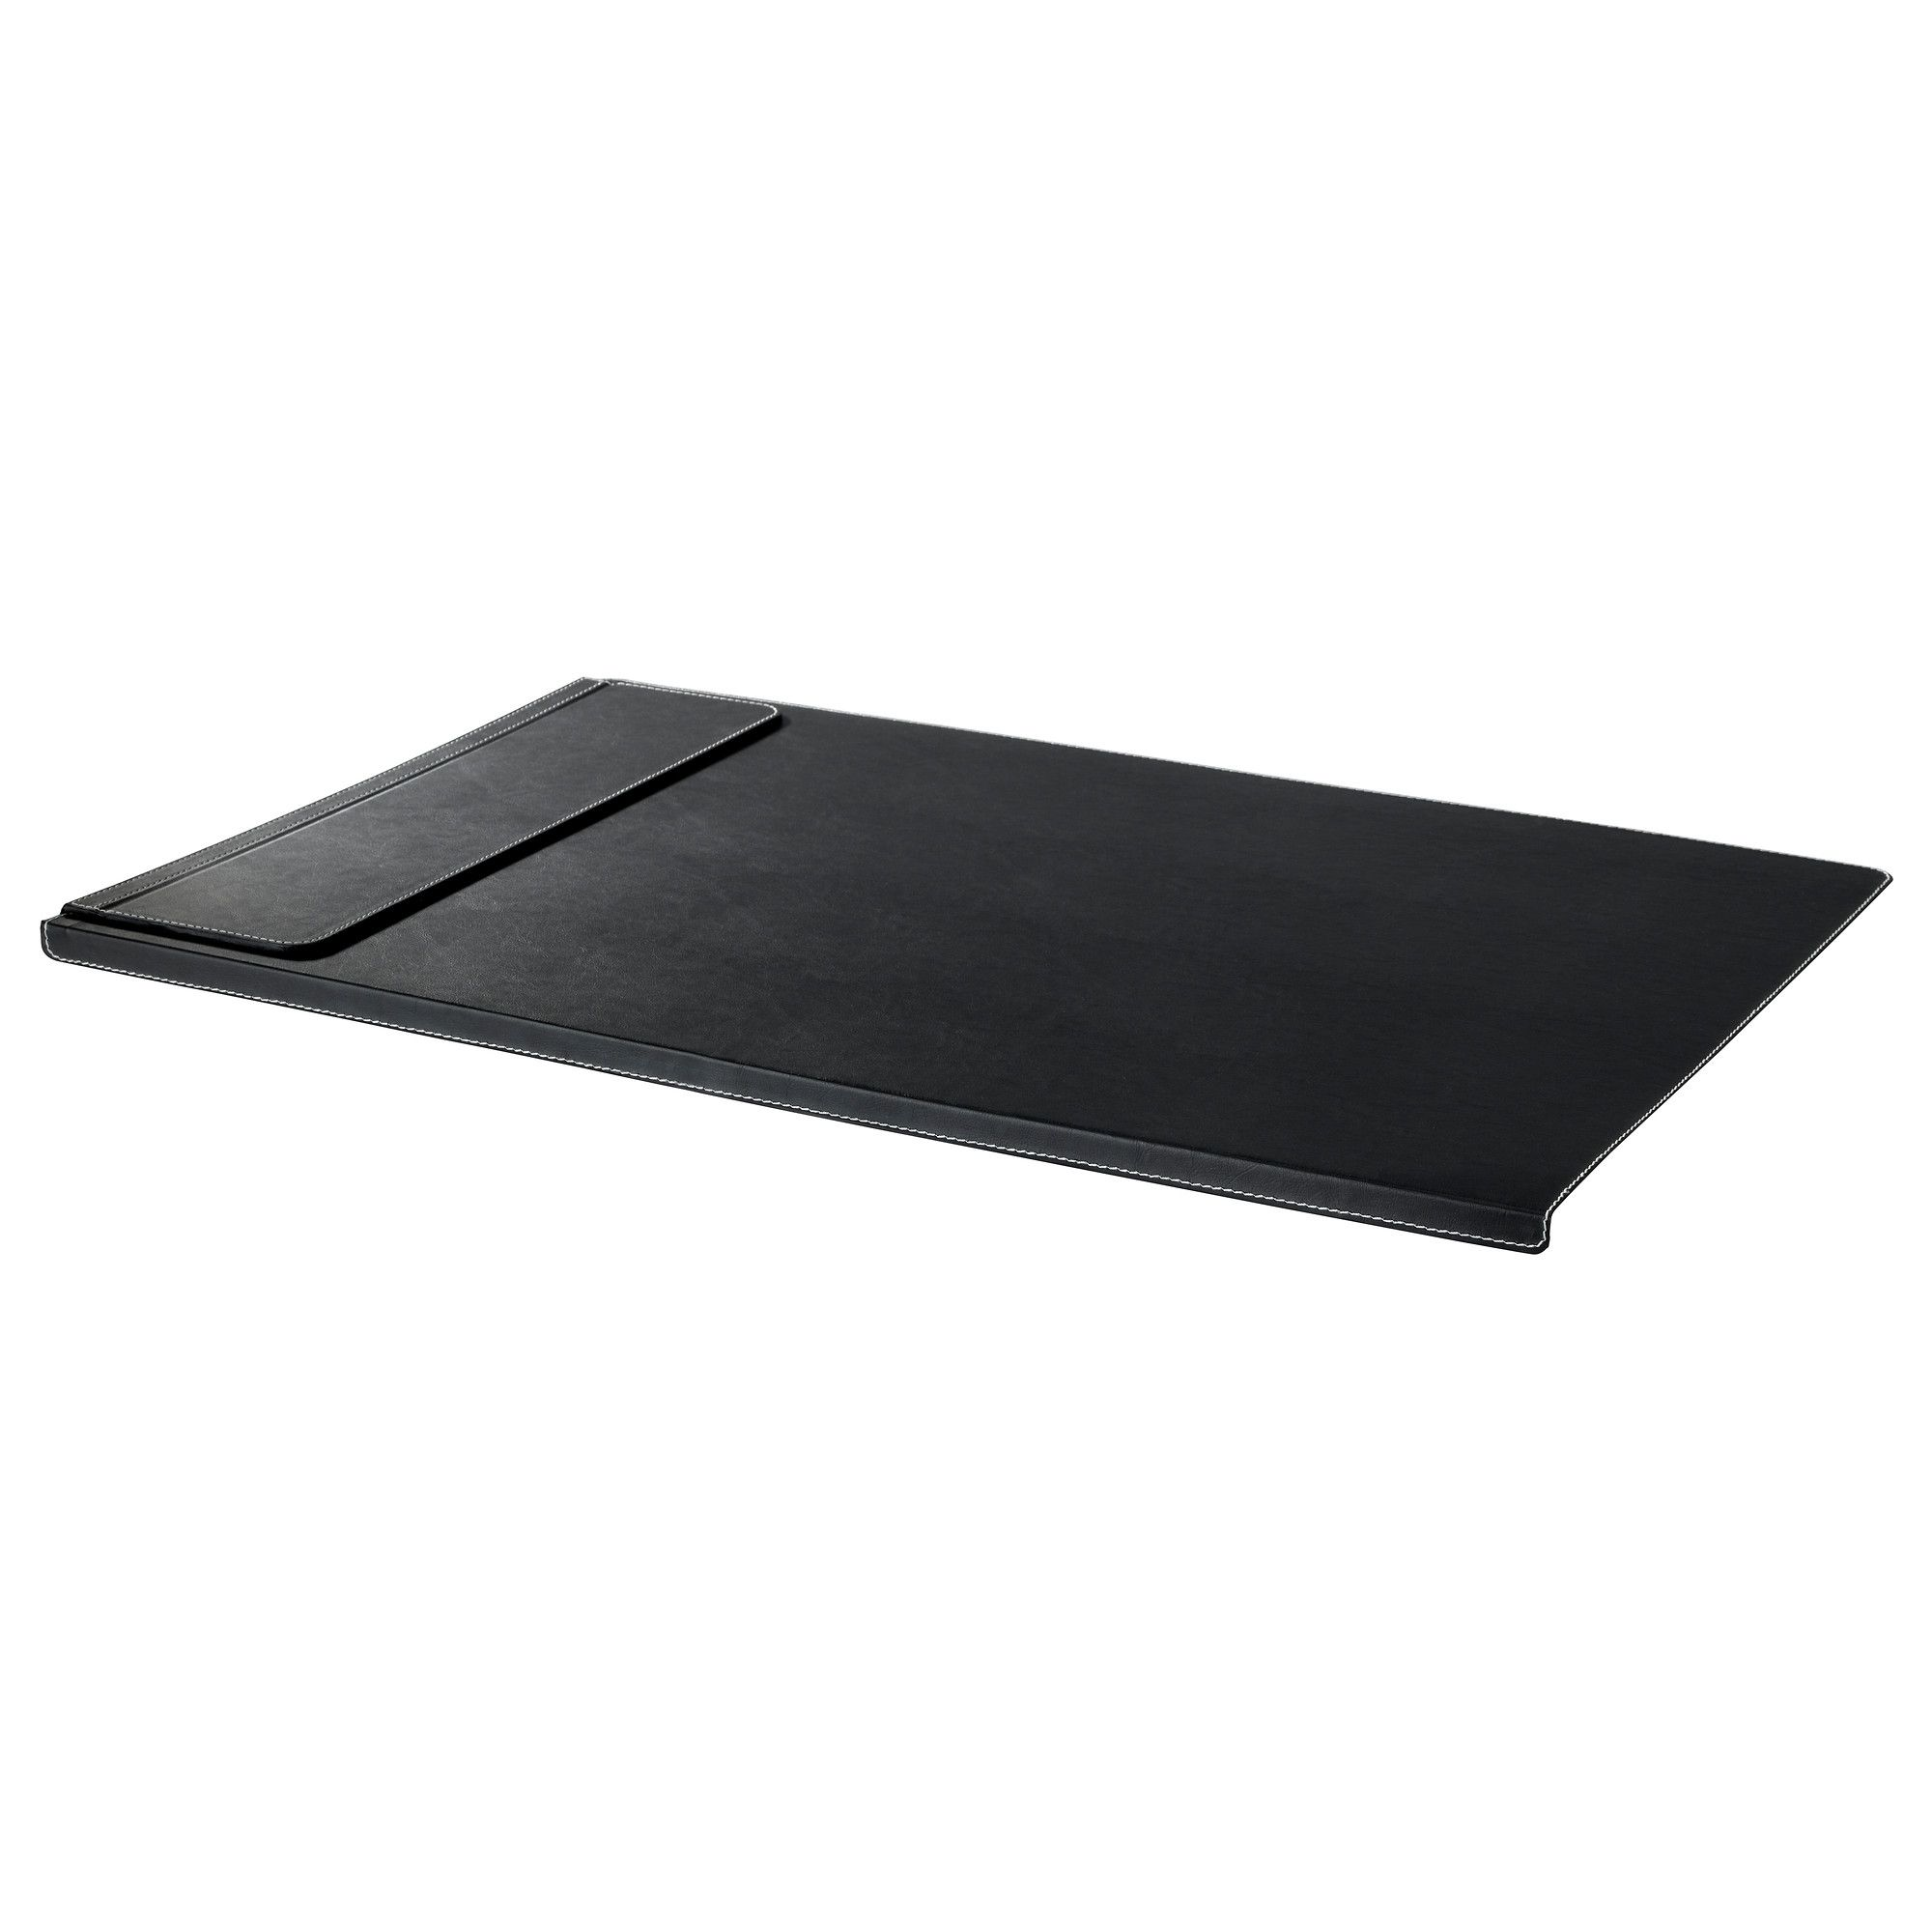 rissla desk pad, black | desk pad, desks and apartments